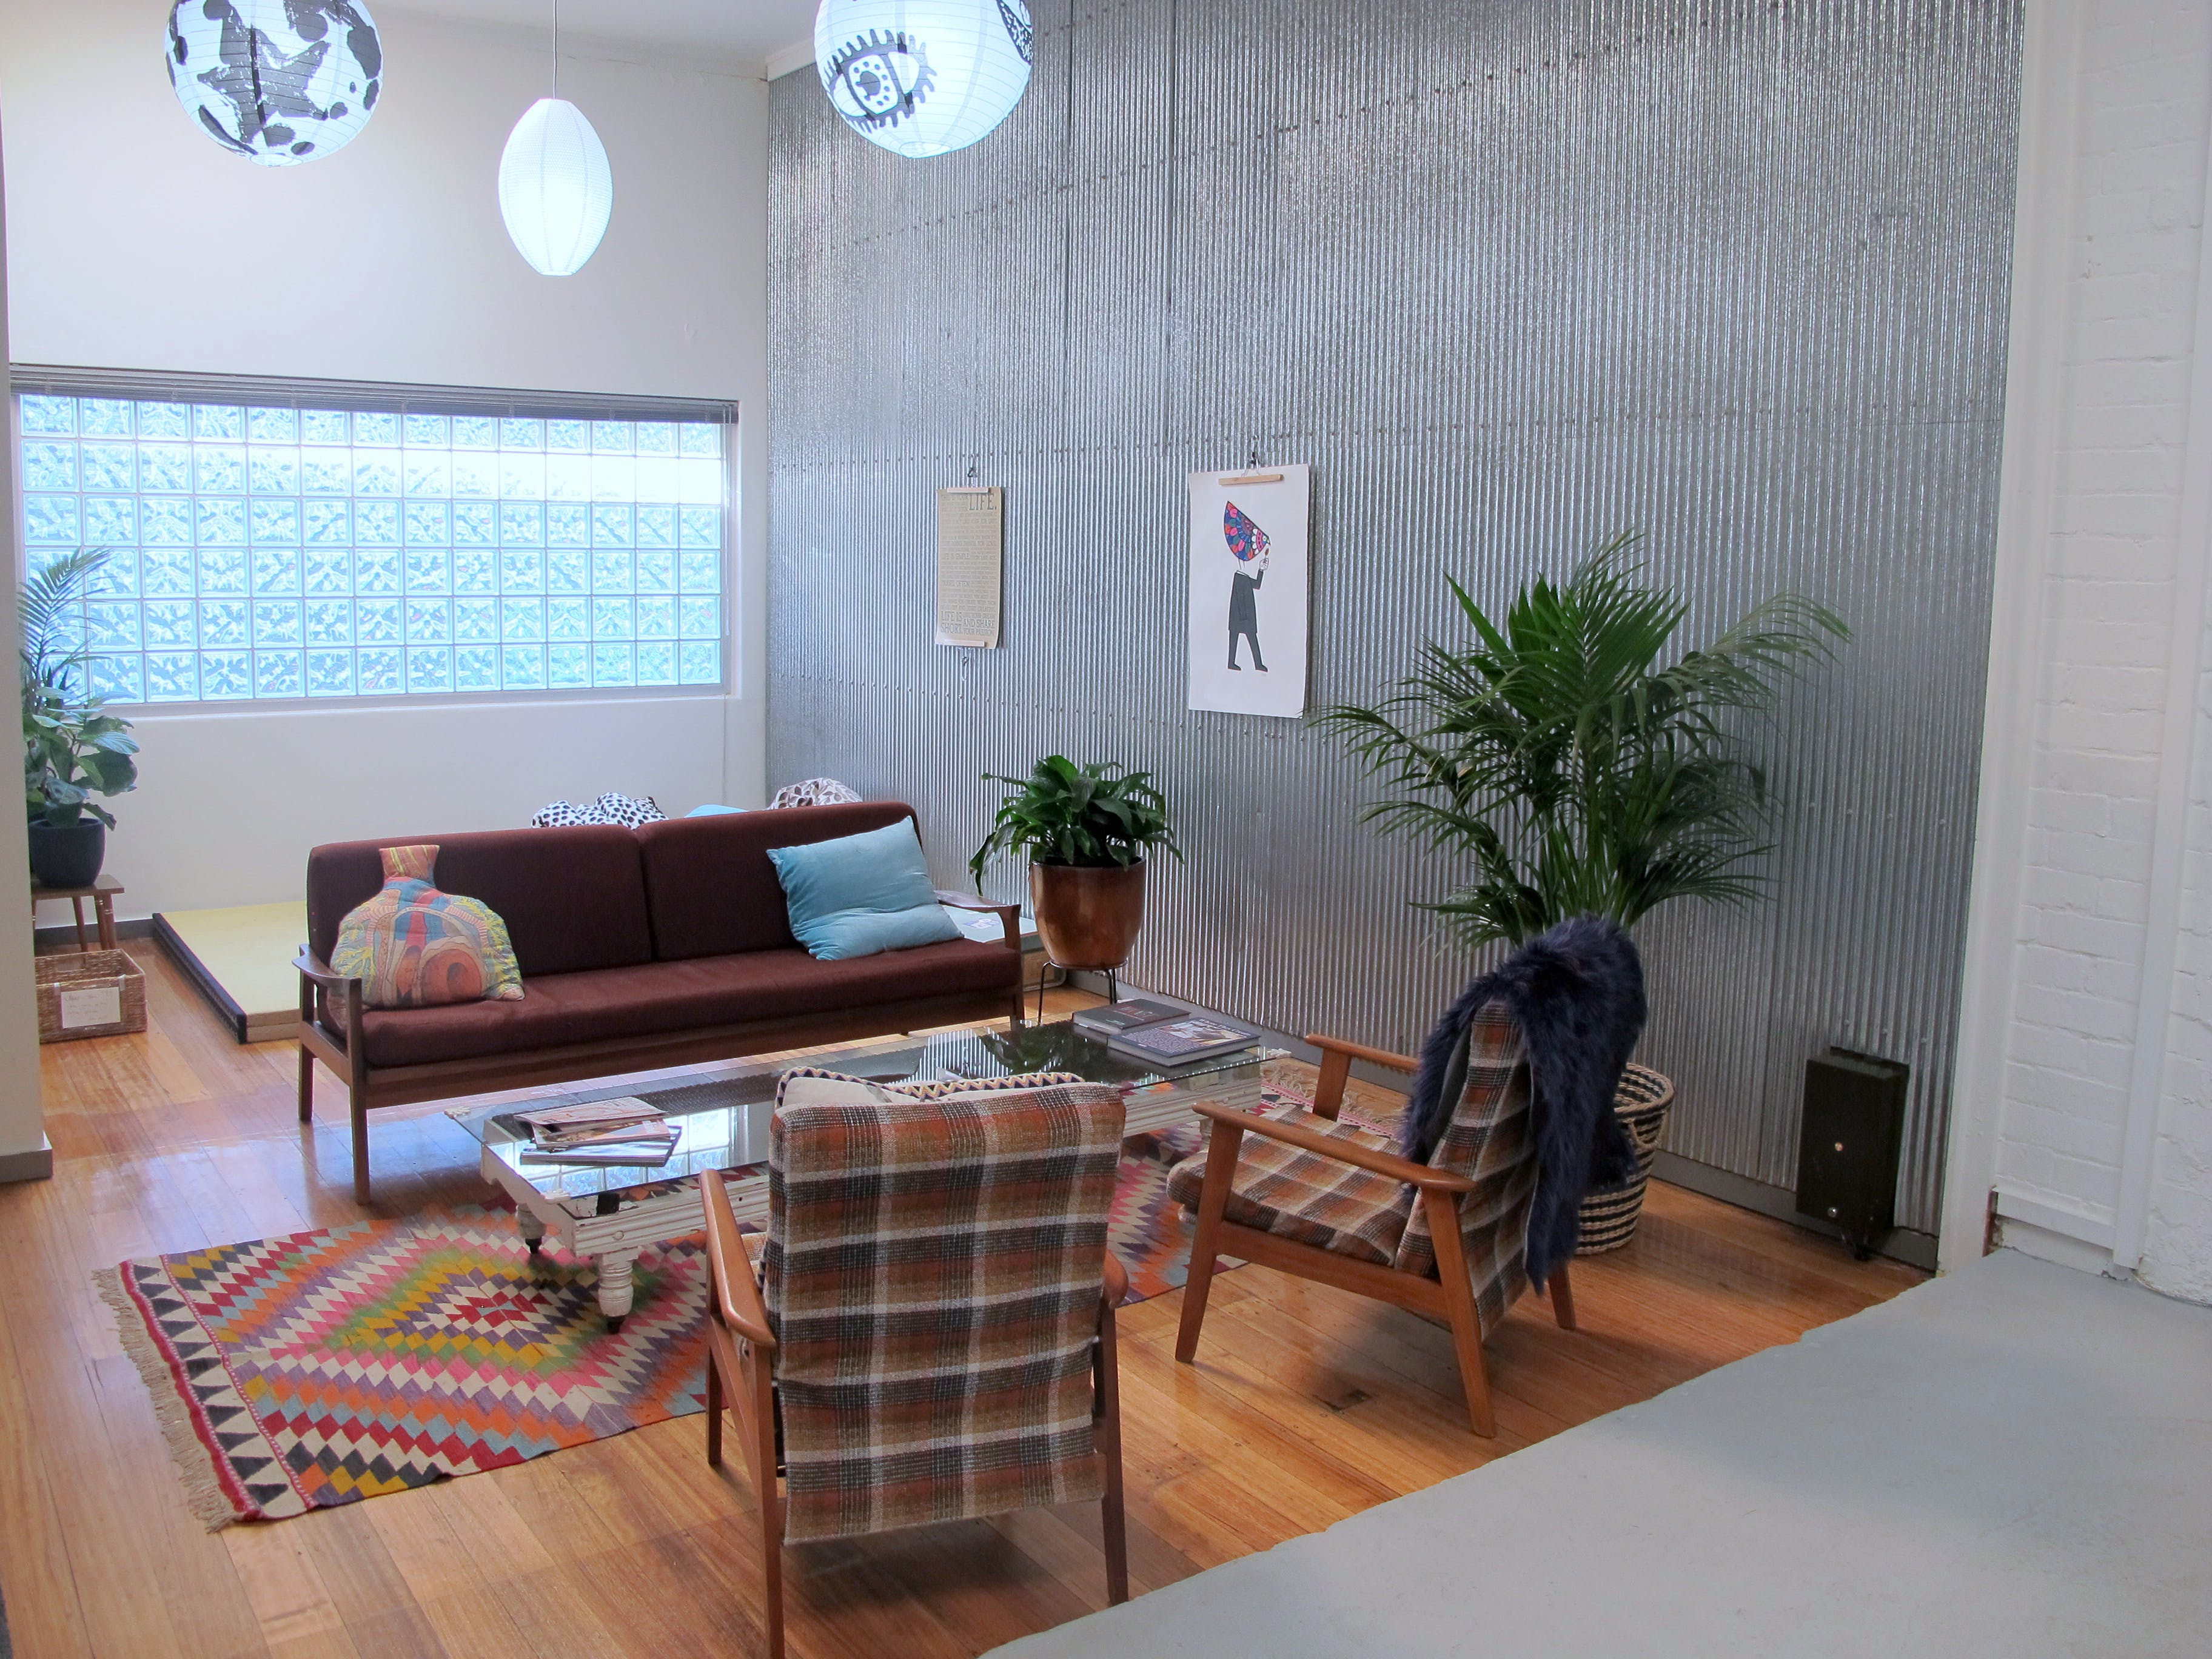 Creative space ready to be styled in line with your vision, image 1